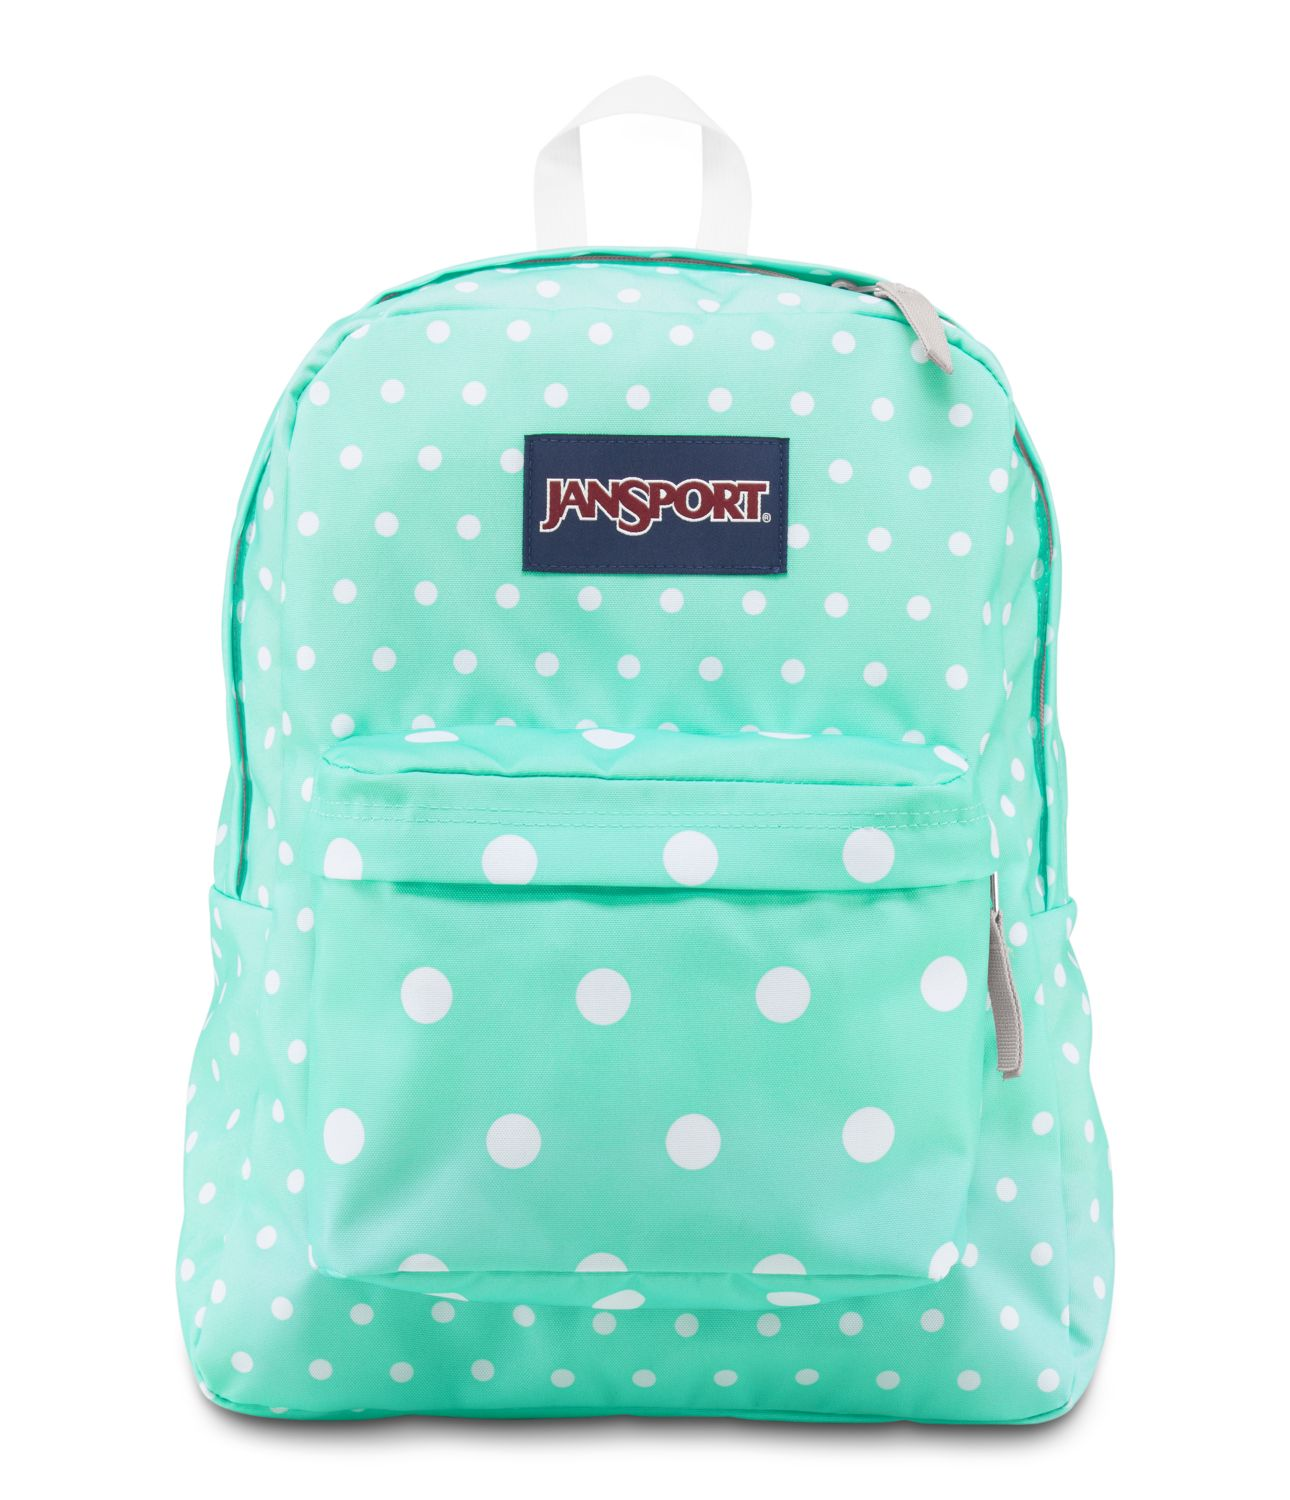 JanSport Overexposed School Backpack - AQUA DASH SPOTS